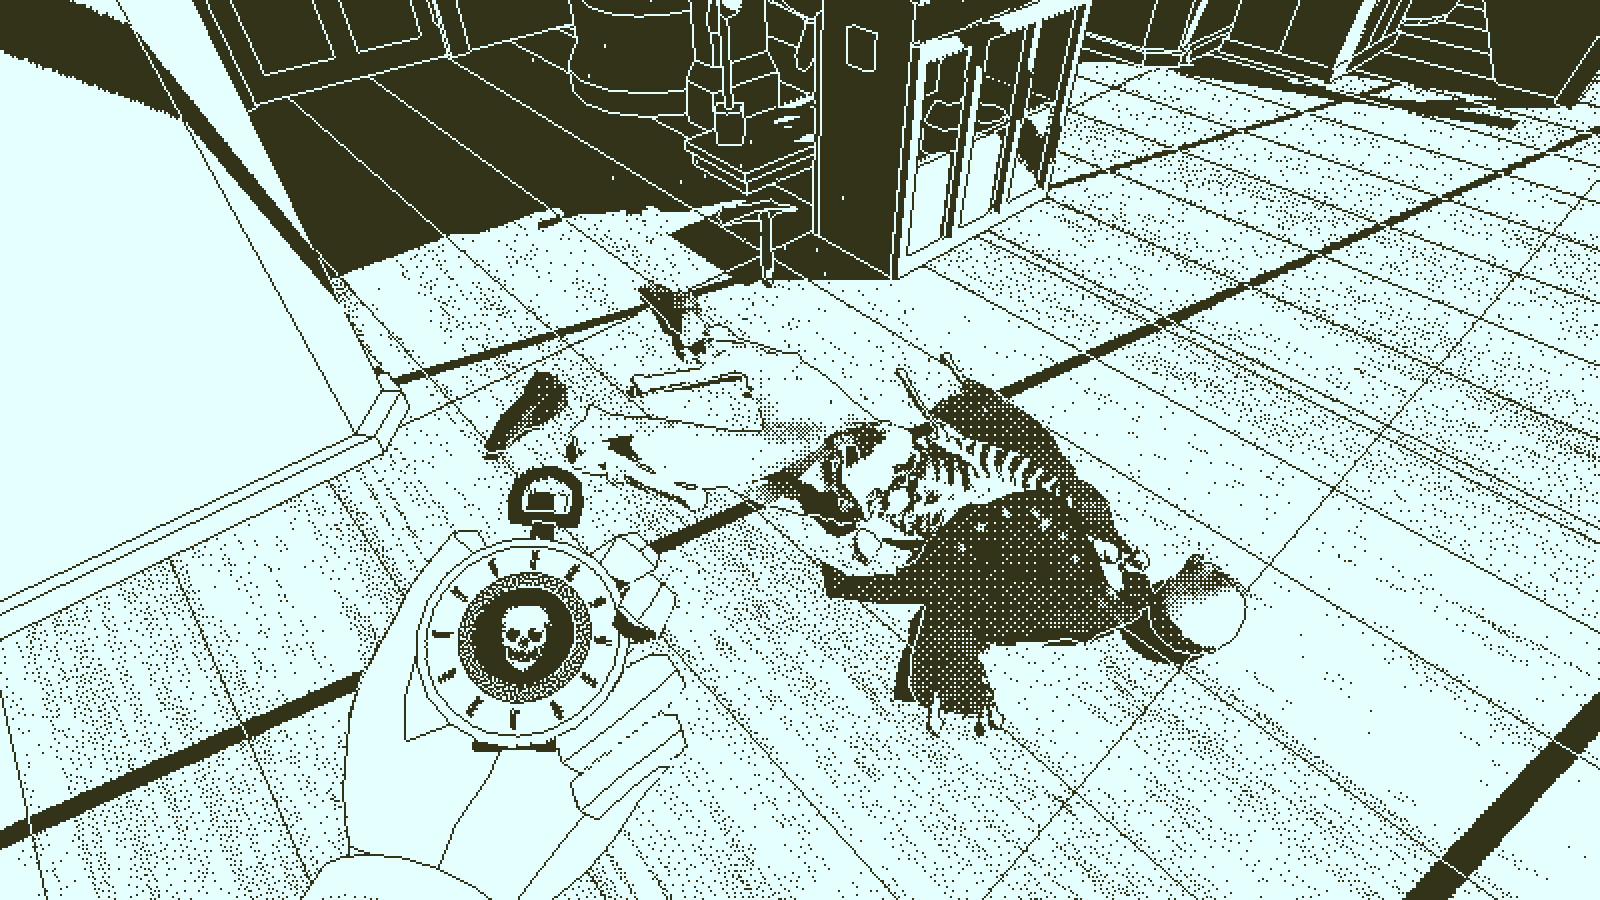 Return of the Obra Dinn Download ZIP